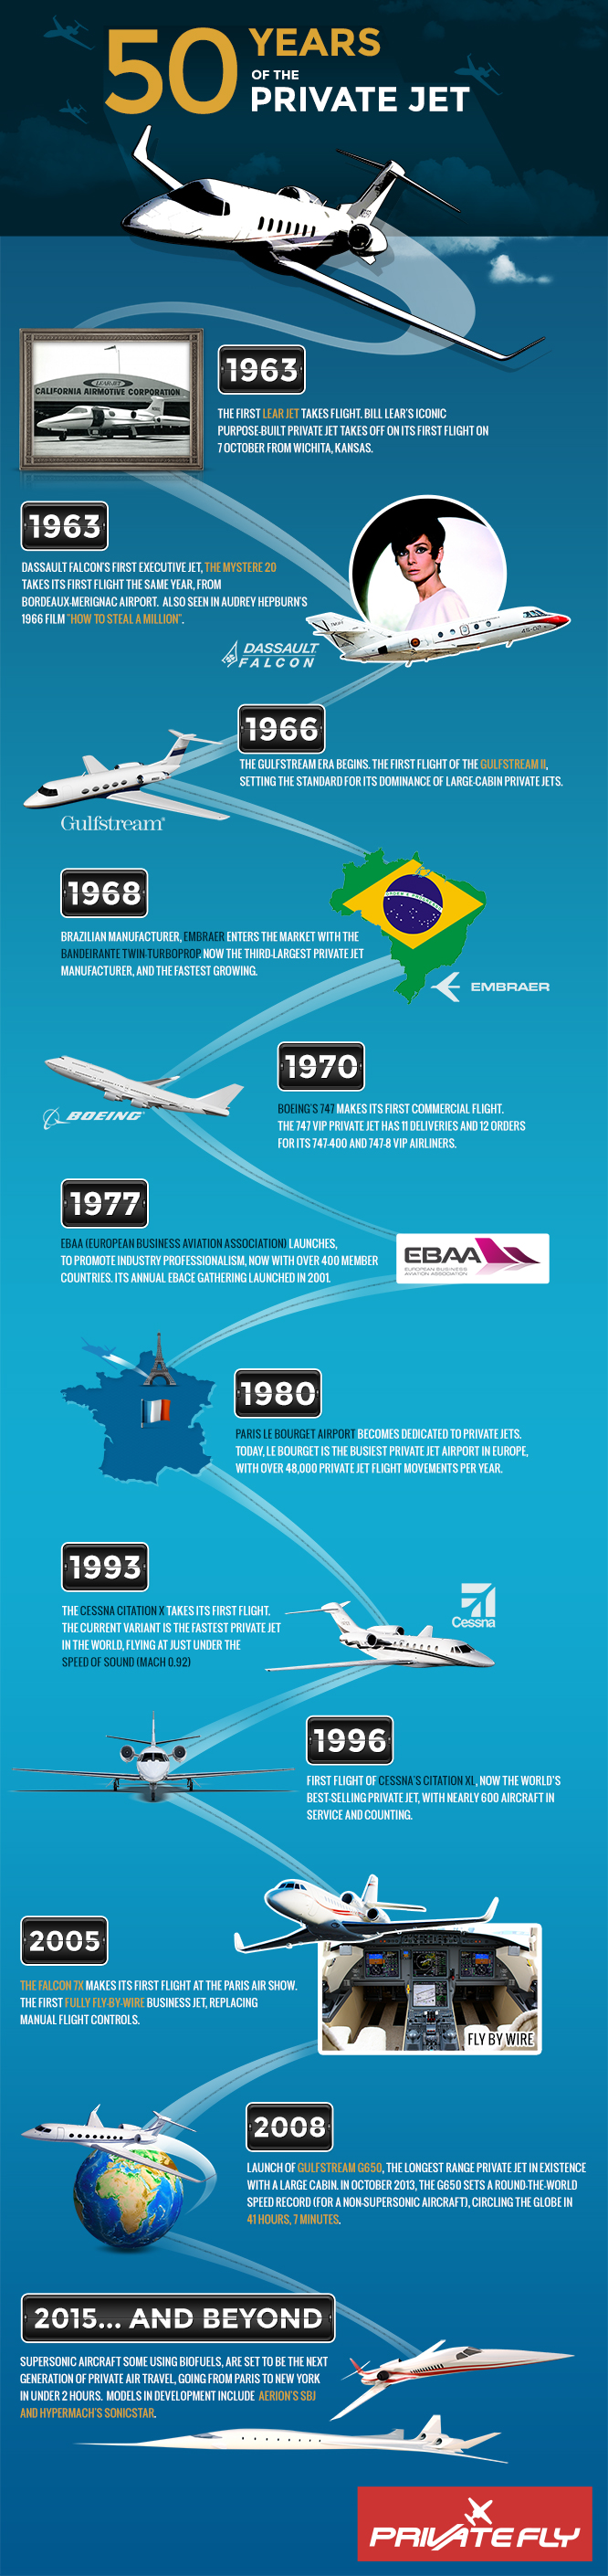 history of private jets